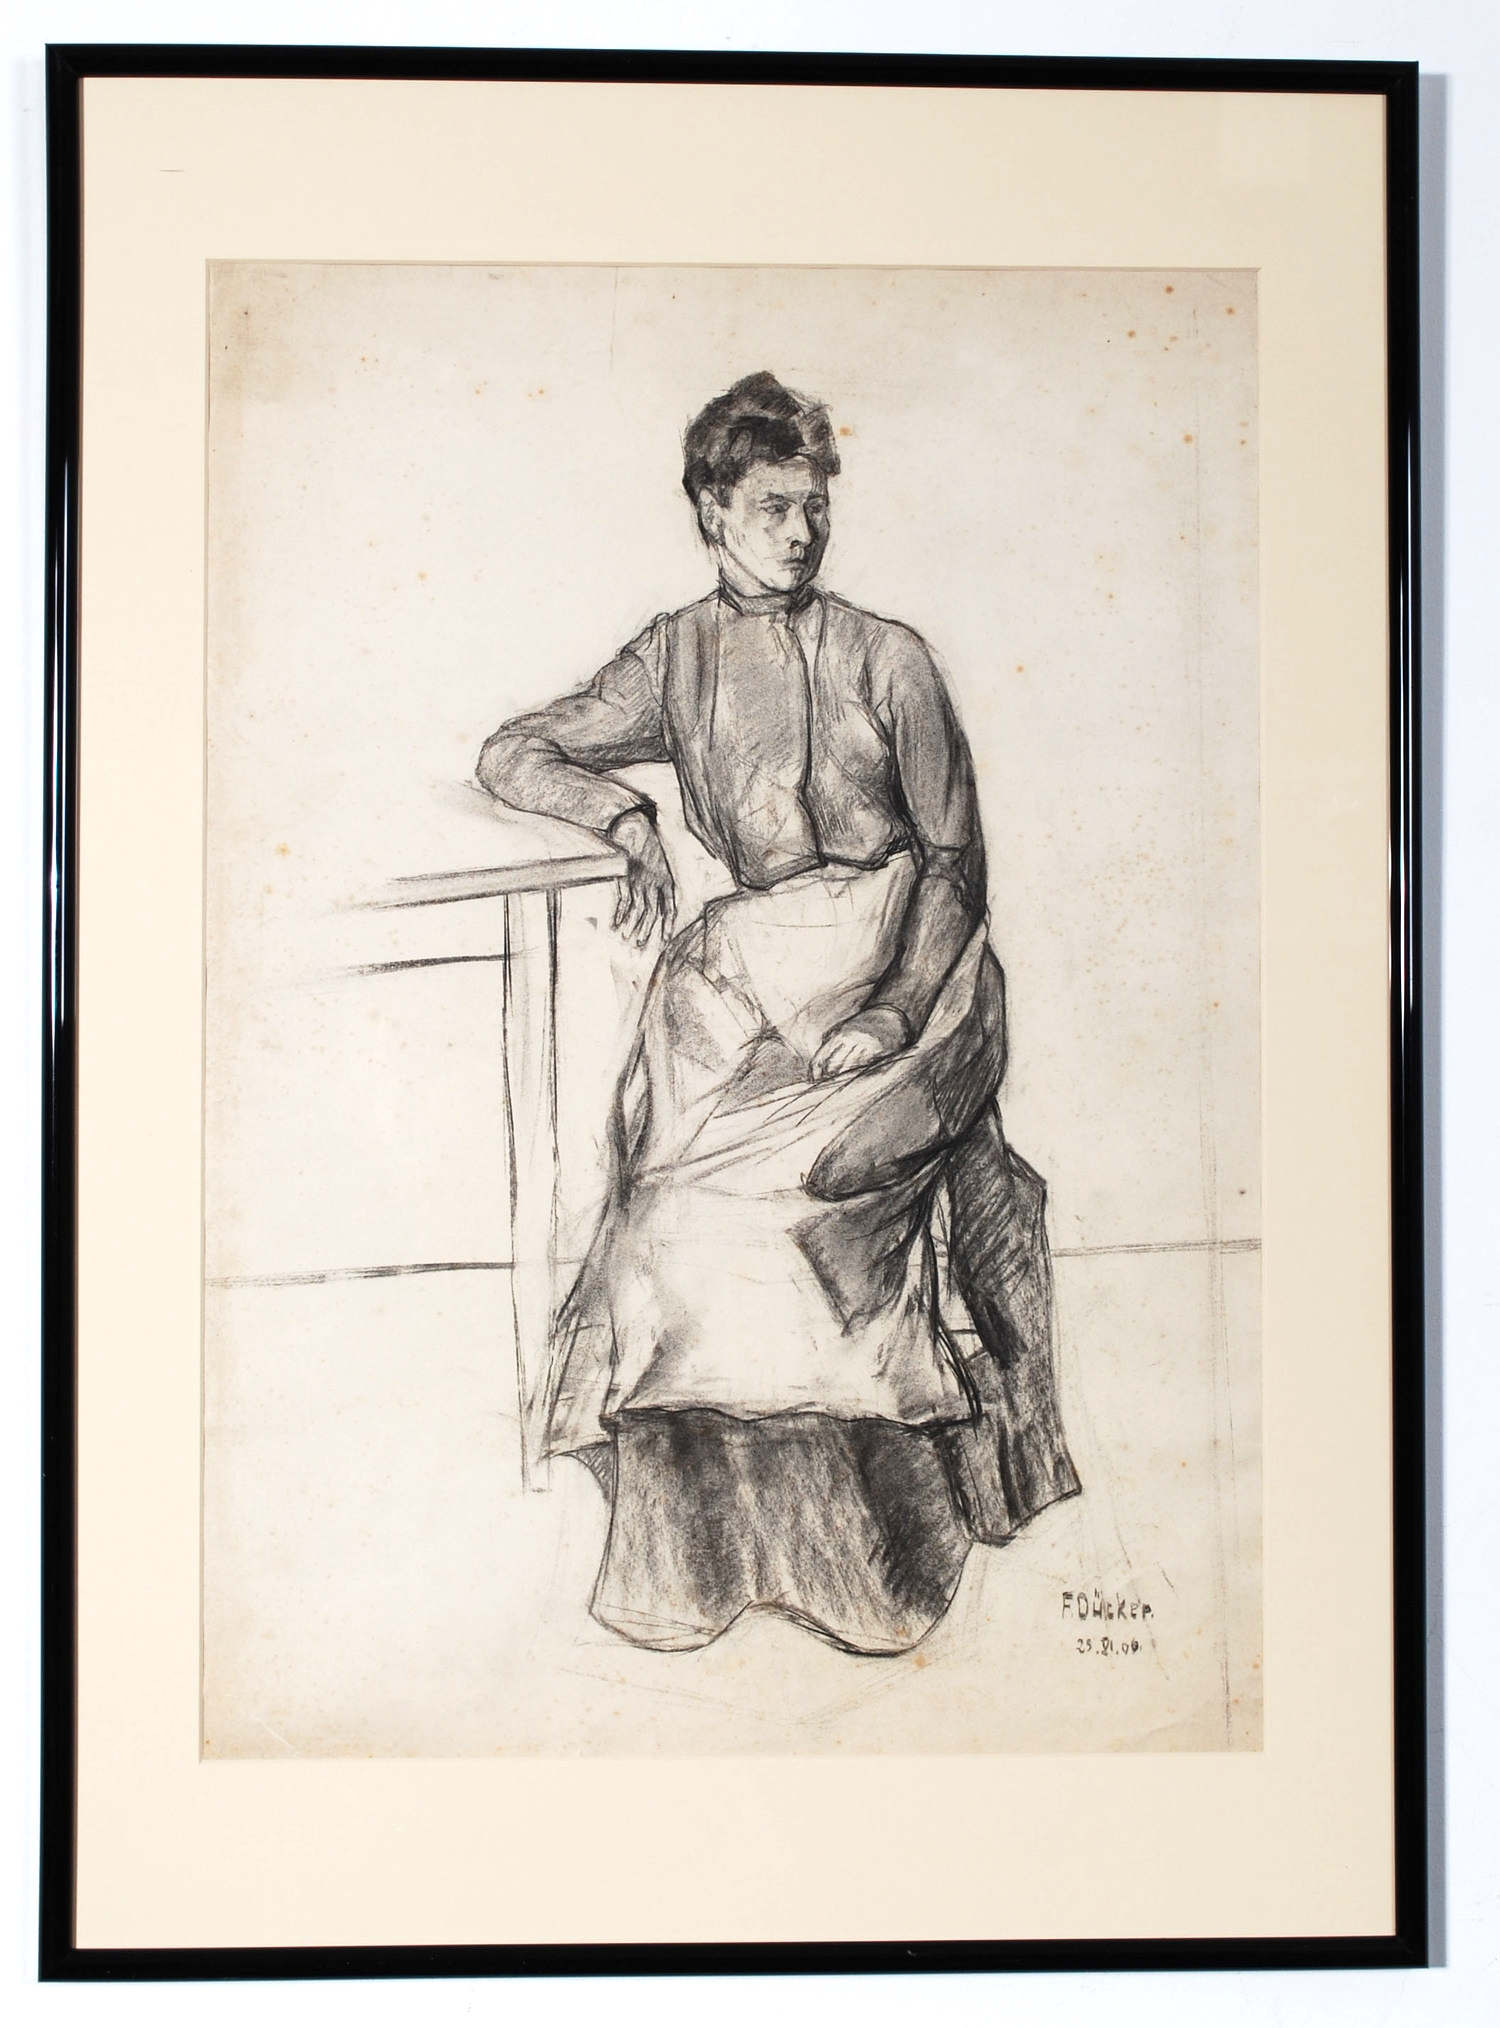 Original sketch made by German student of Art in 1906, signed  - AVAILABLE